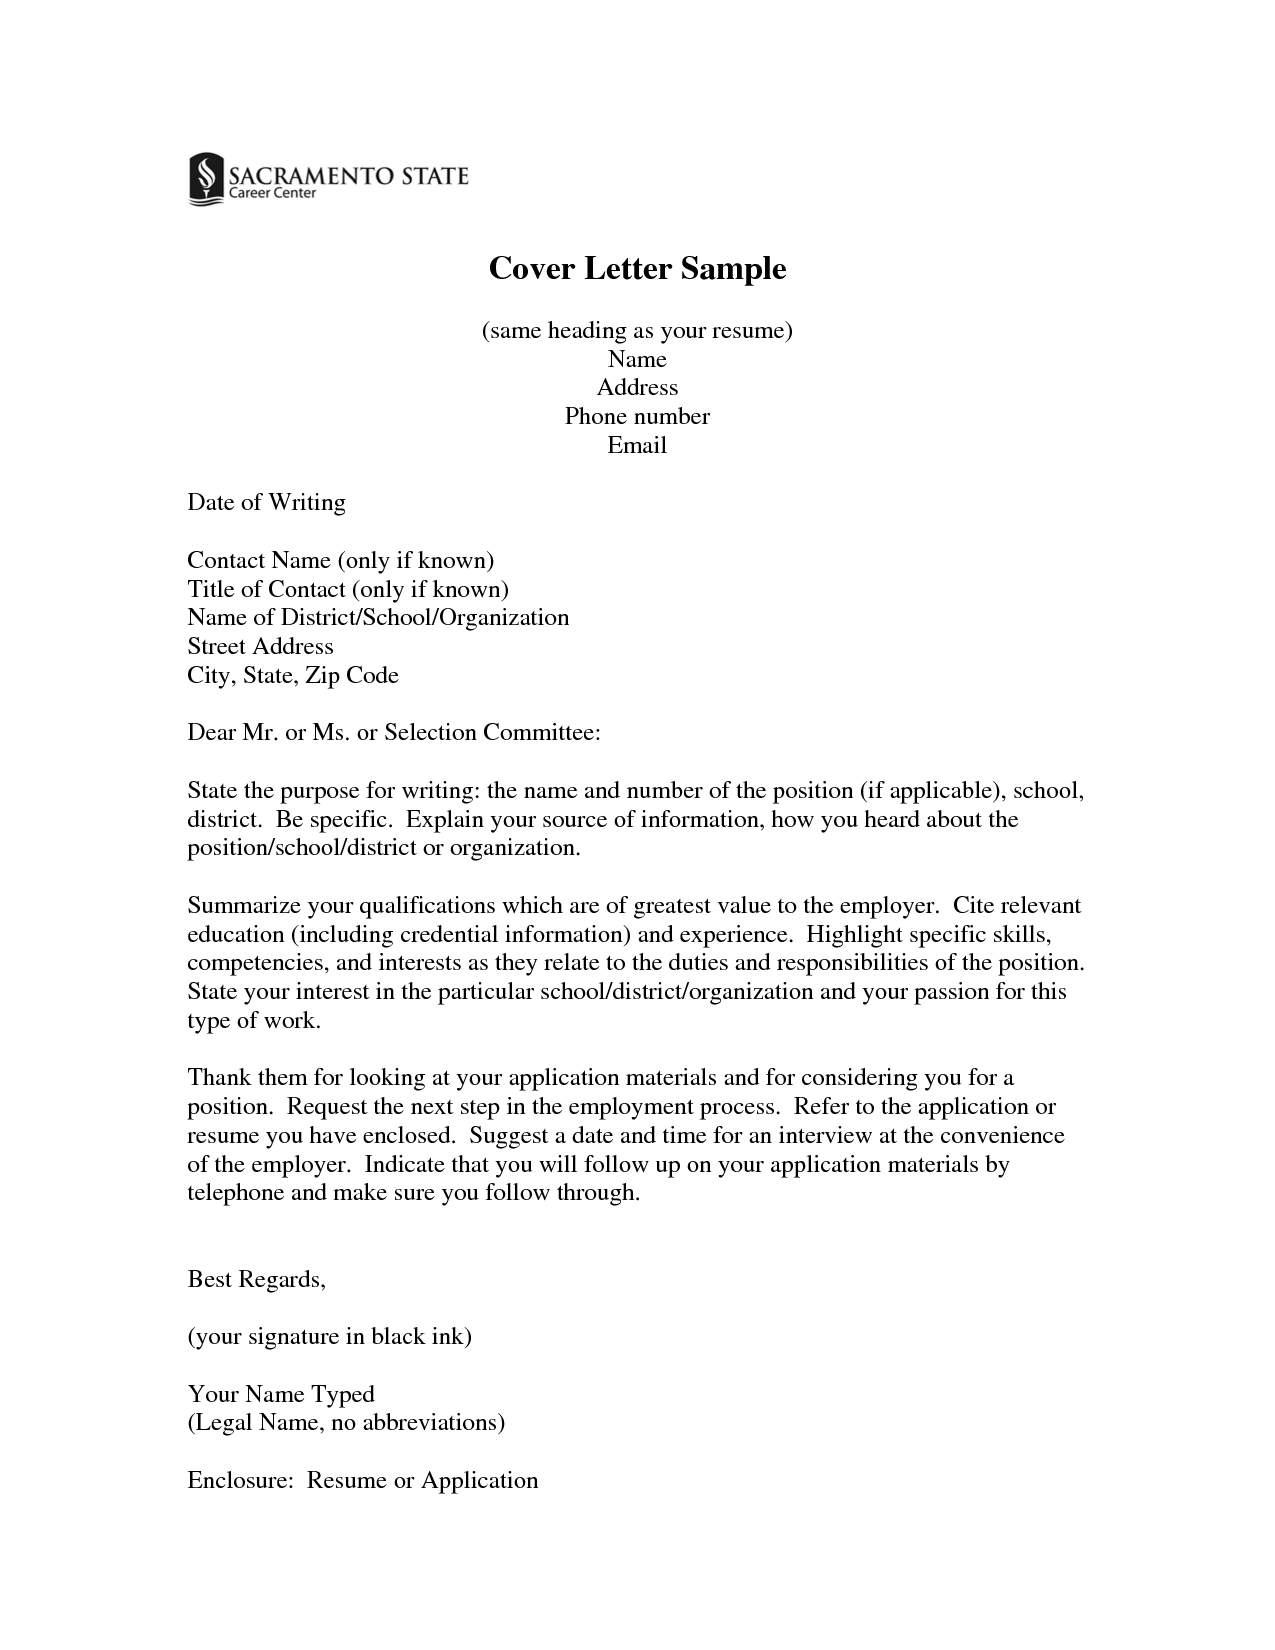 same cover letters for resume  Cover Letter Sample same heading as your resume Name Address